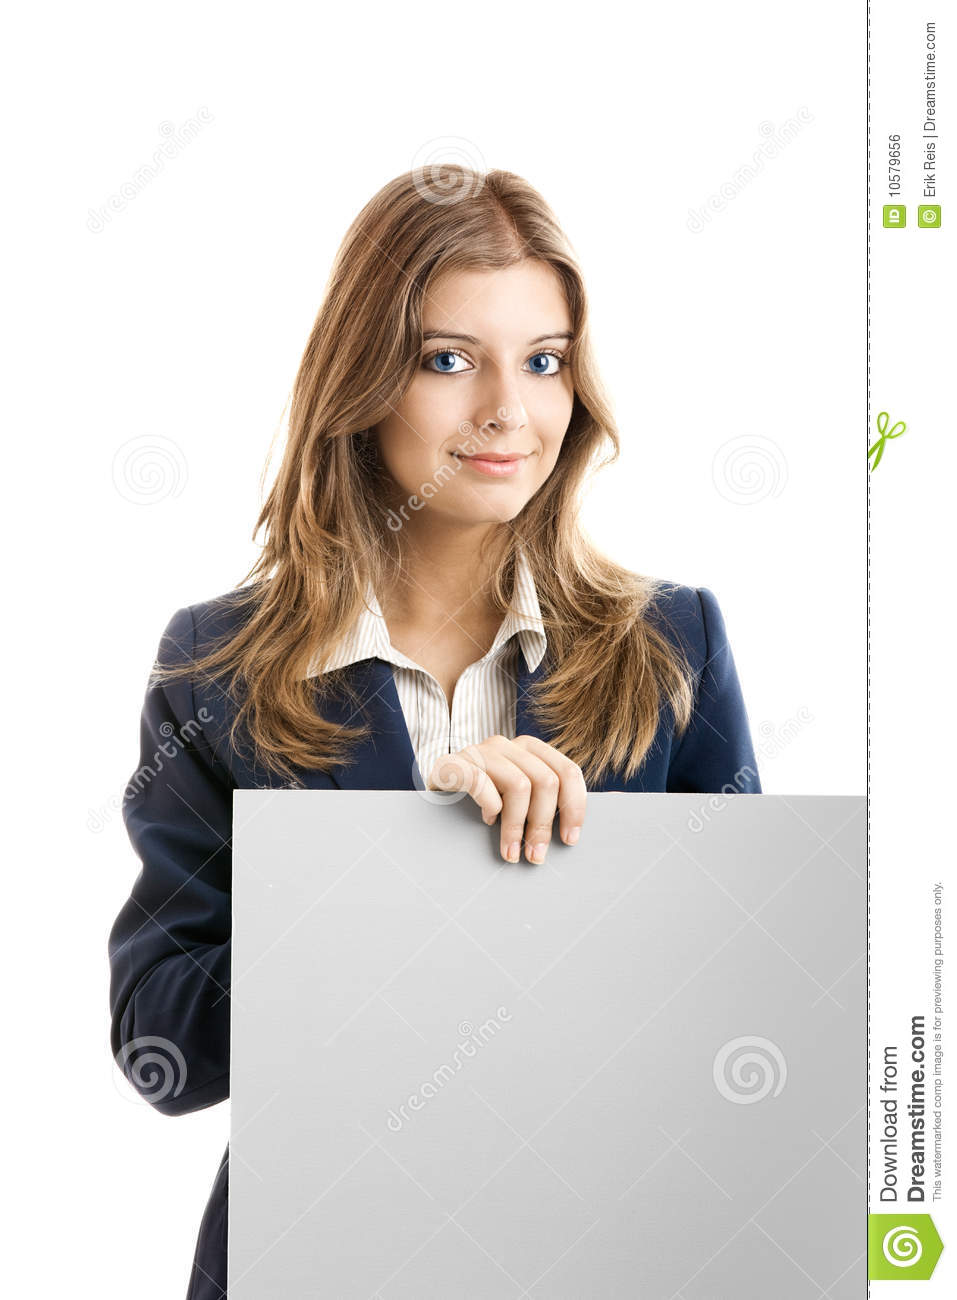 Business Woman holding a billboard